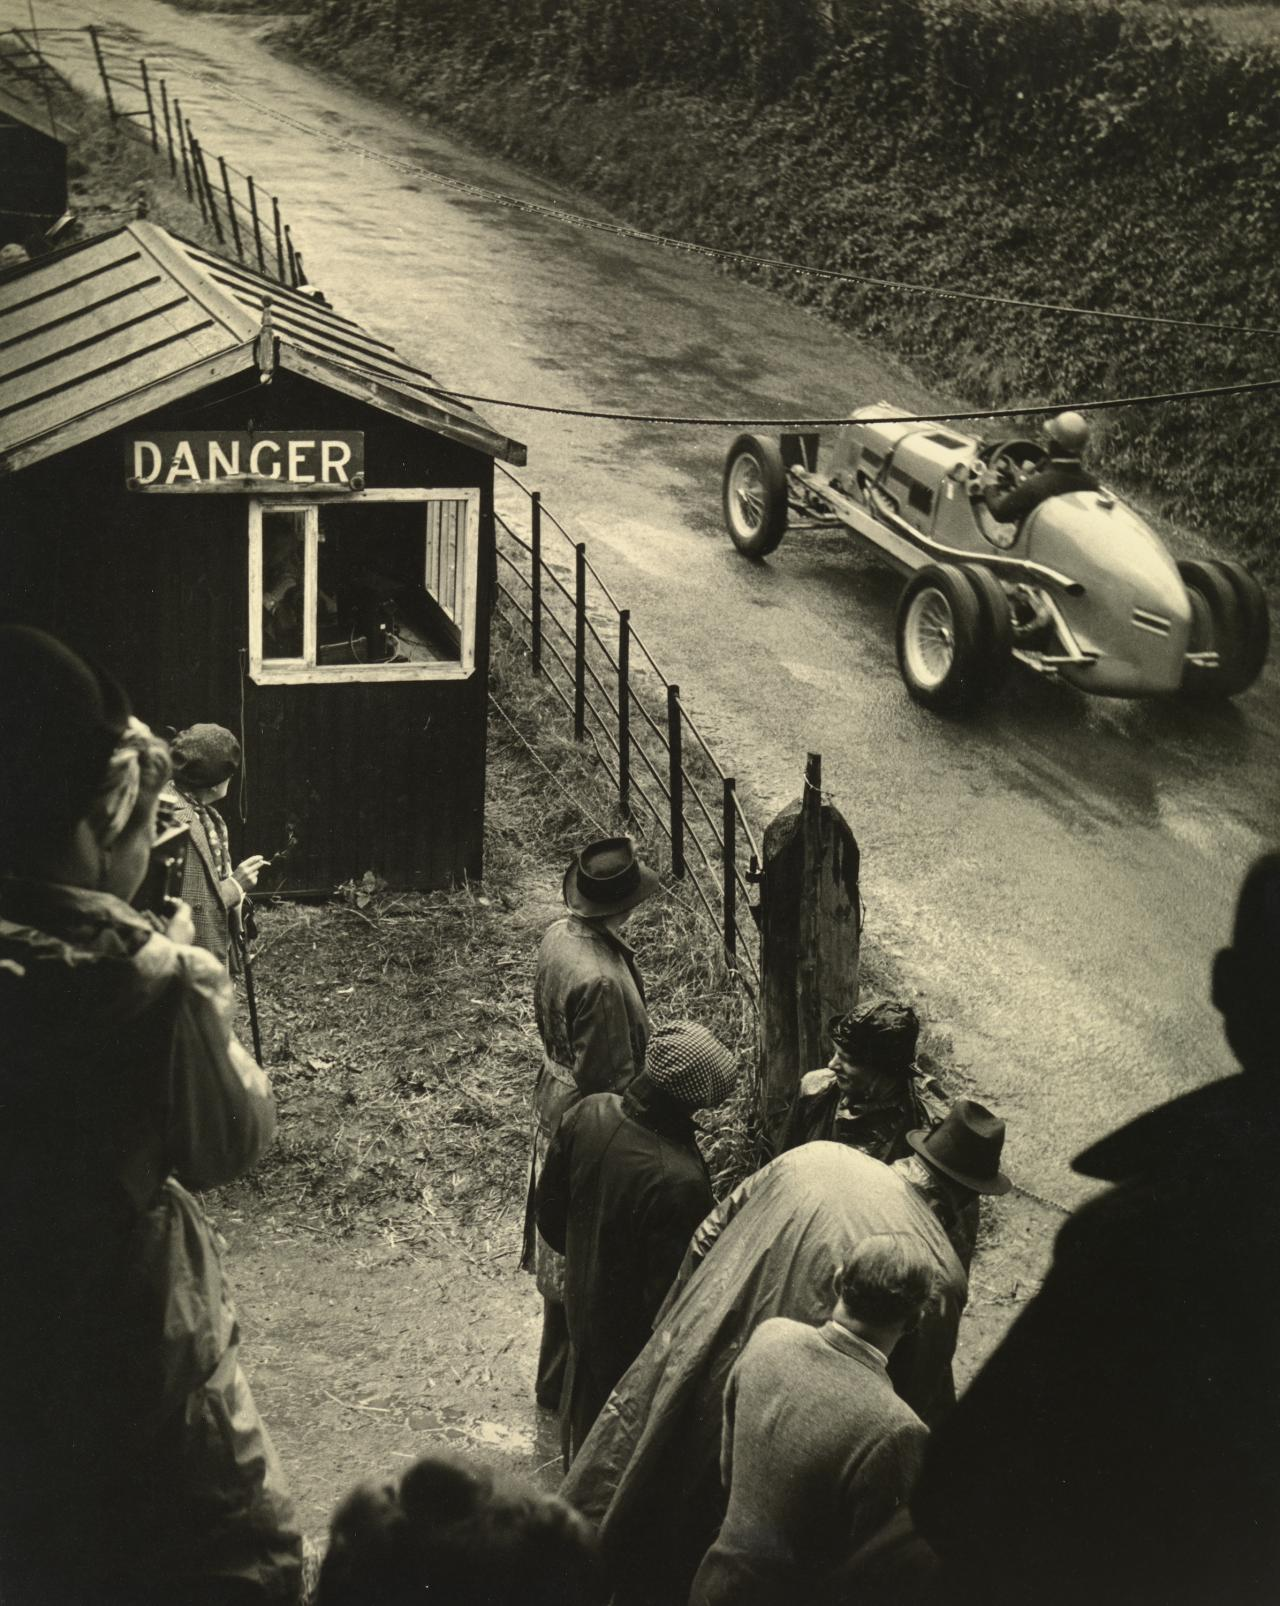 Bira in his 2.9 litre Maserati passing the timing hut, Shelsley Walsh